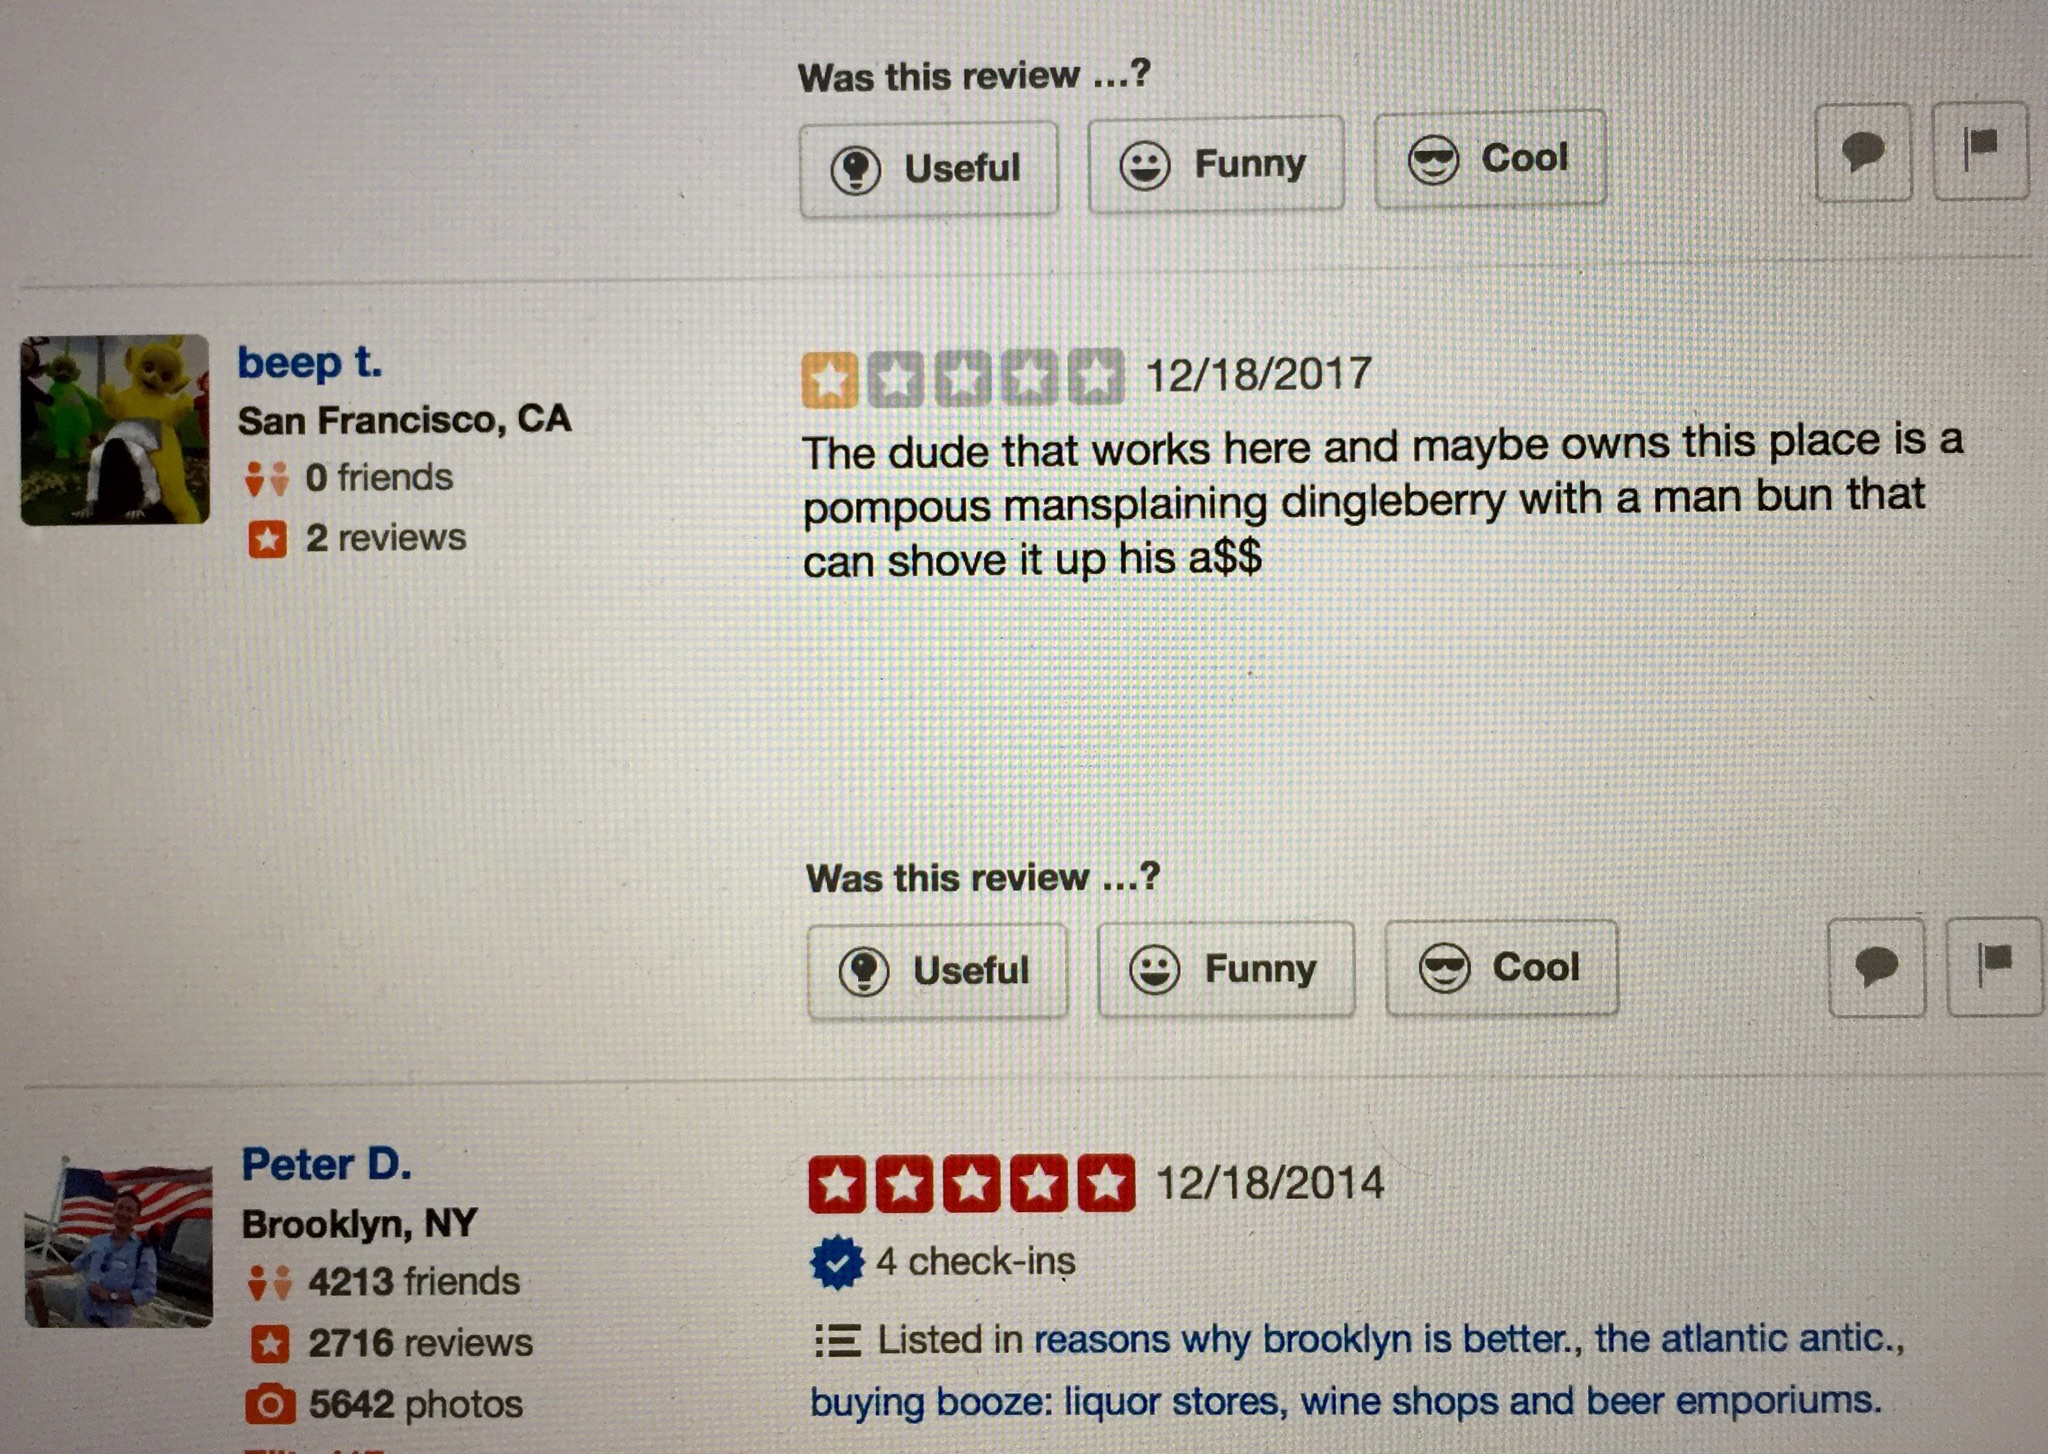 beep t Yelp review 12-16-2017